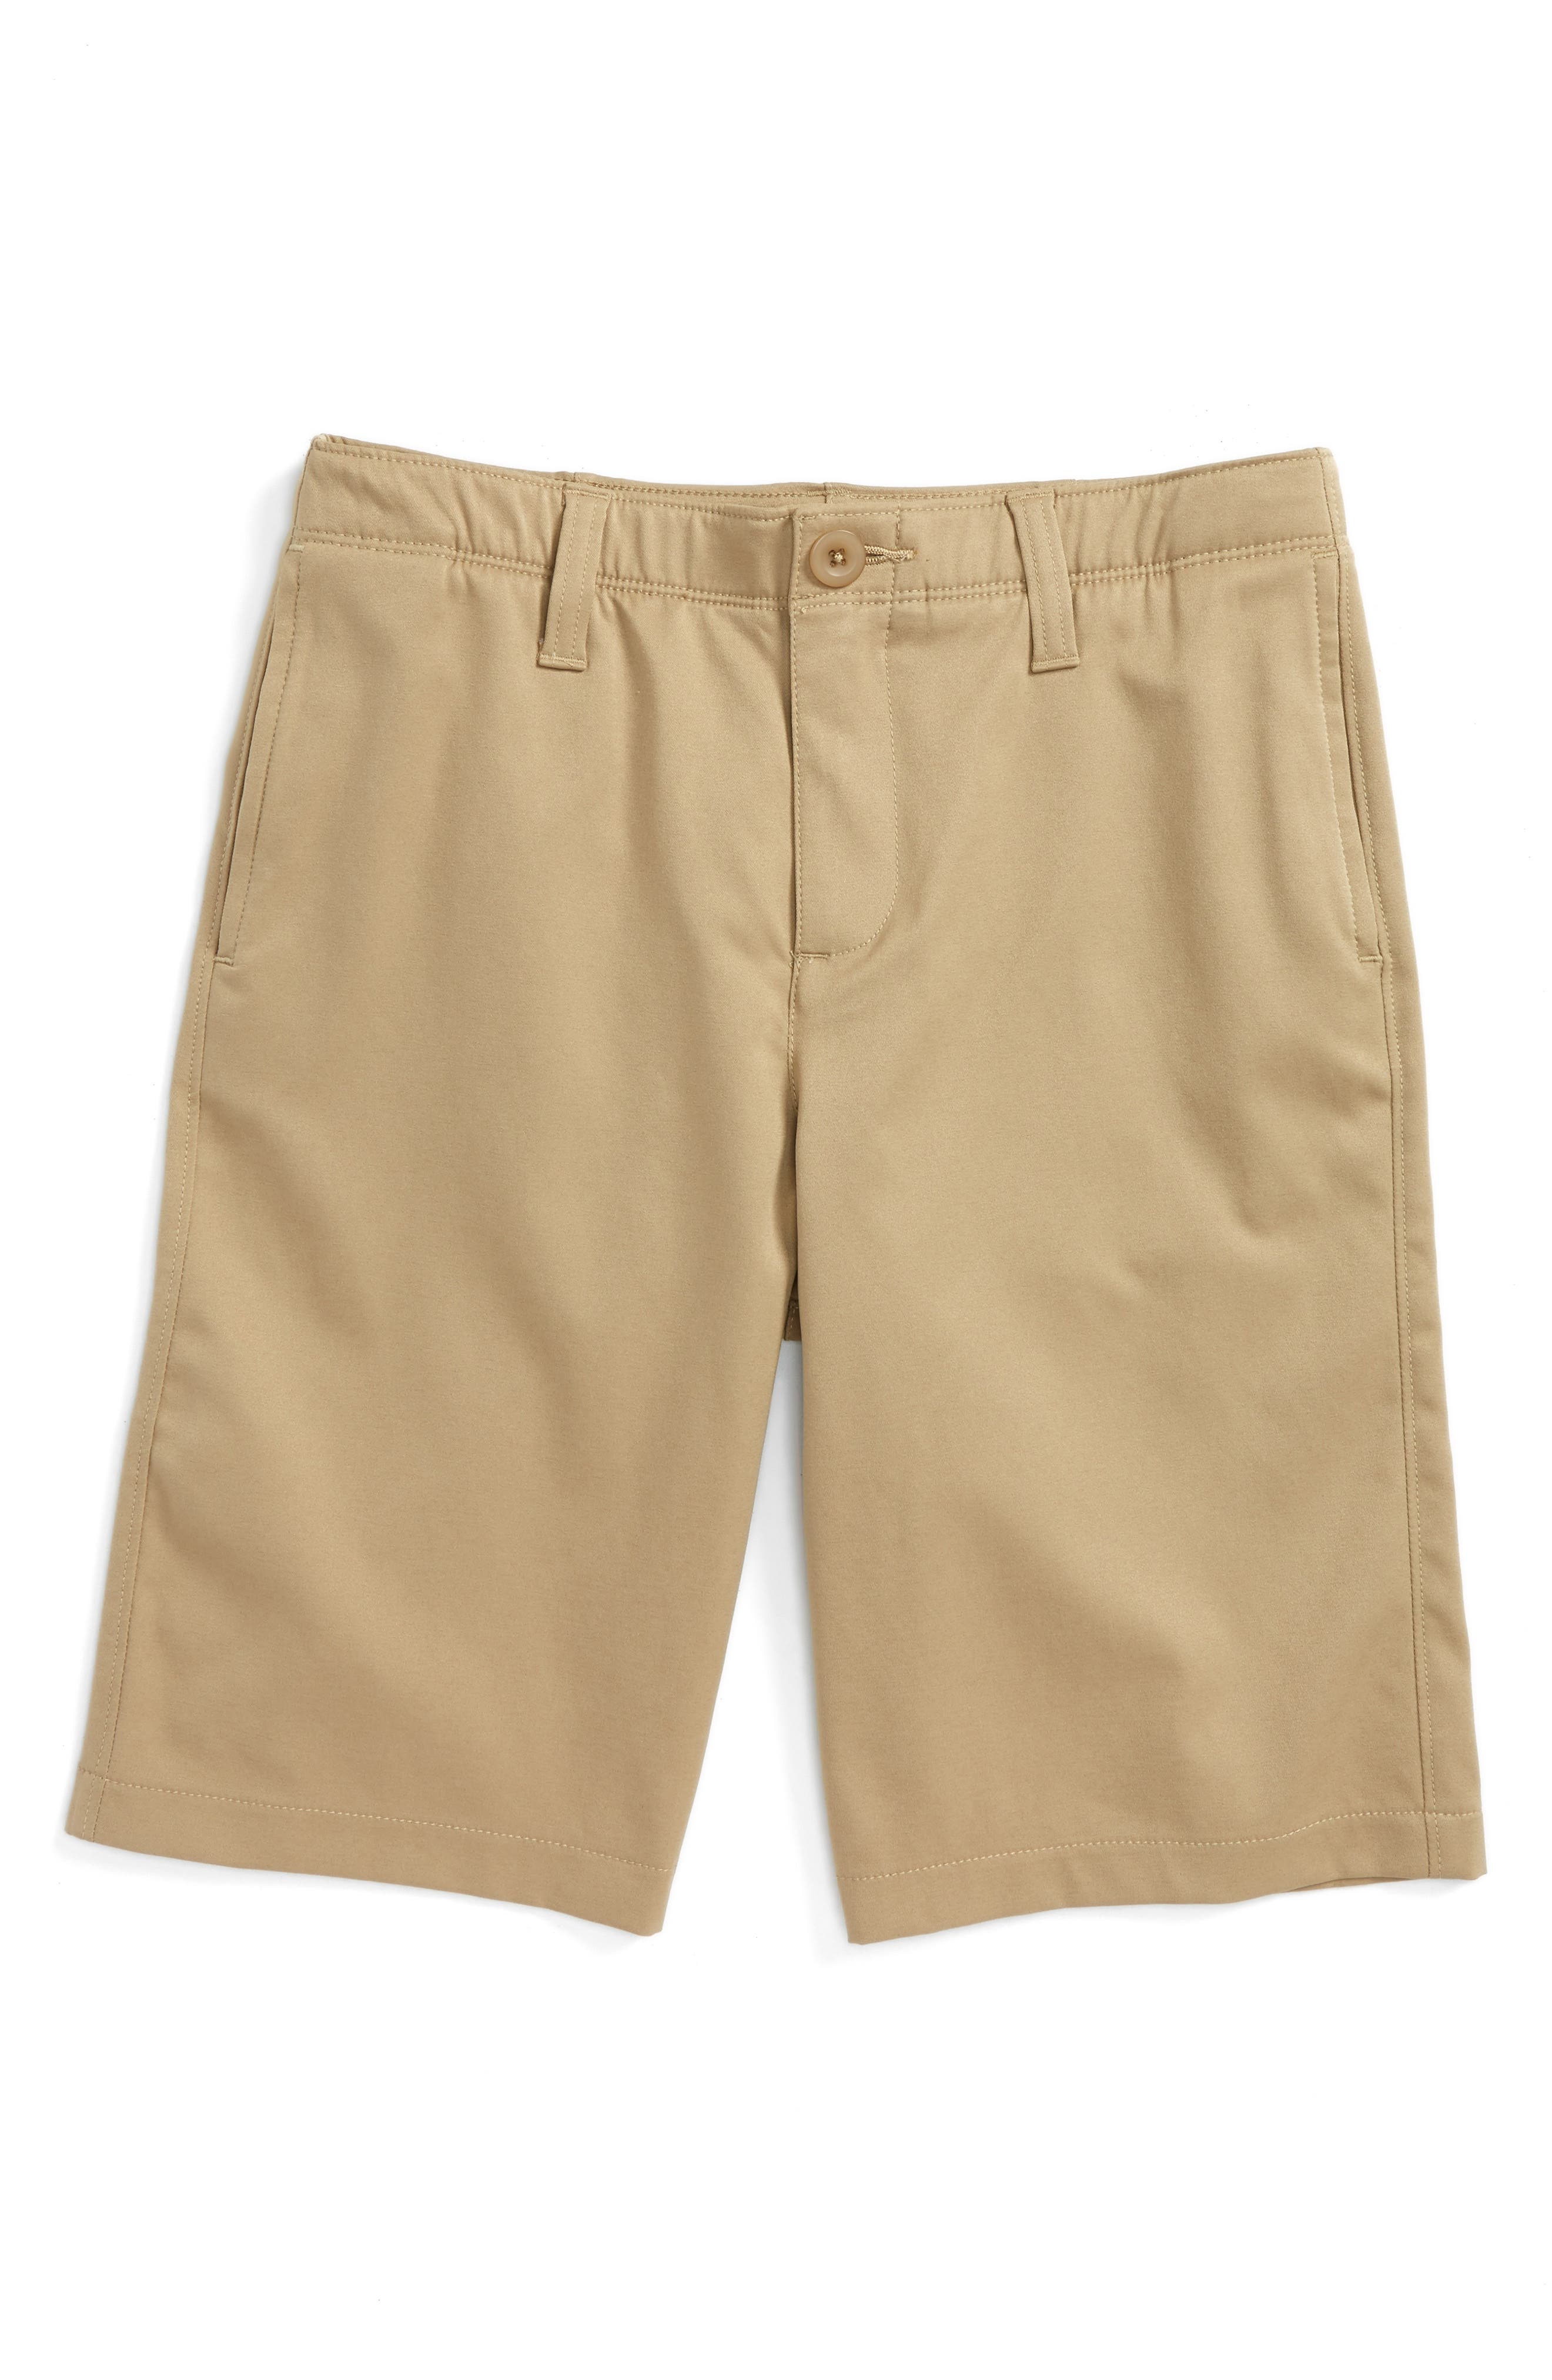 Match Play Shorts,                         Main,                         color, Canvas